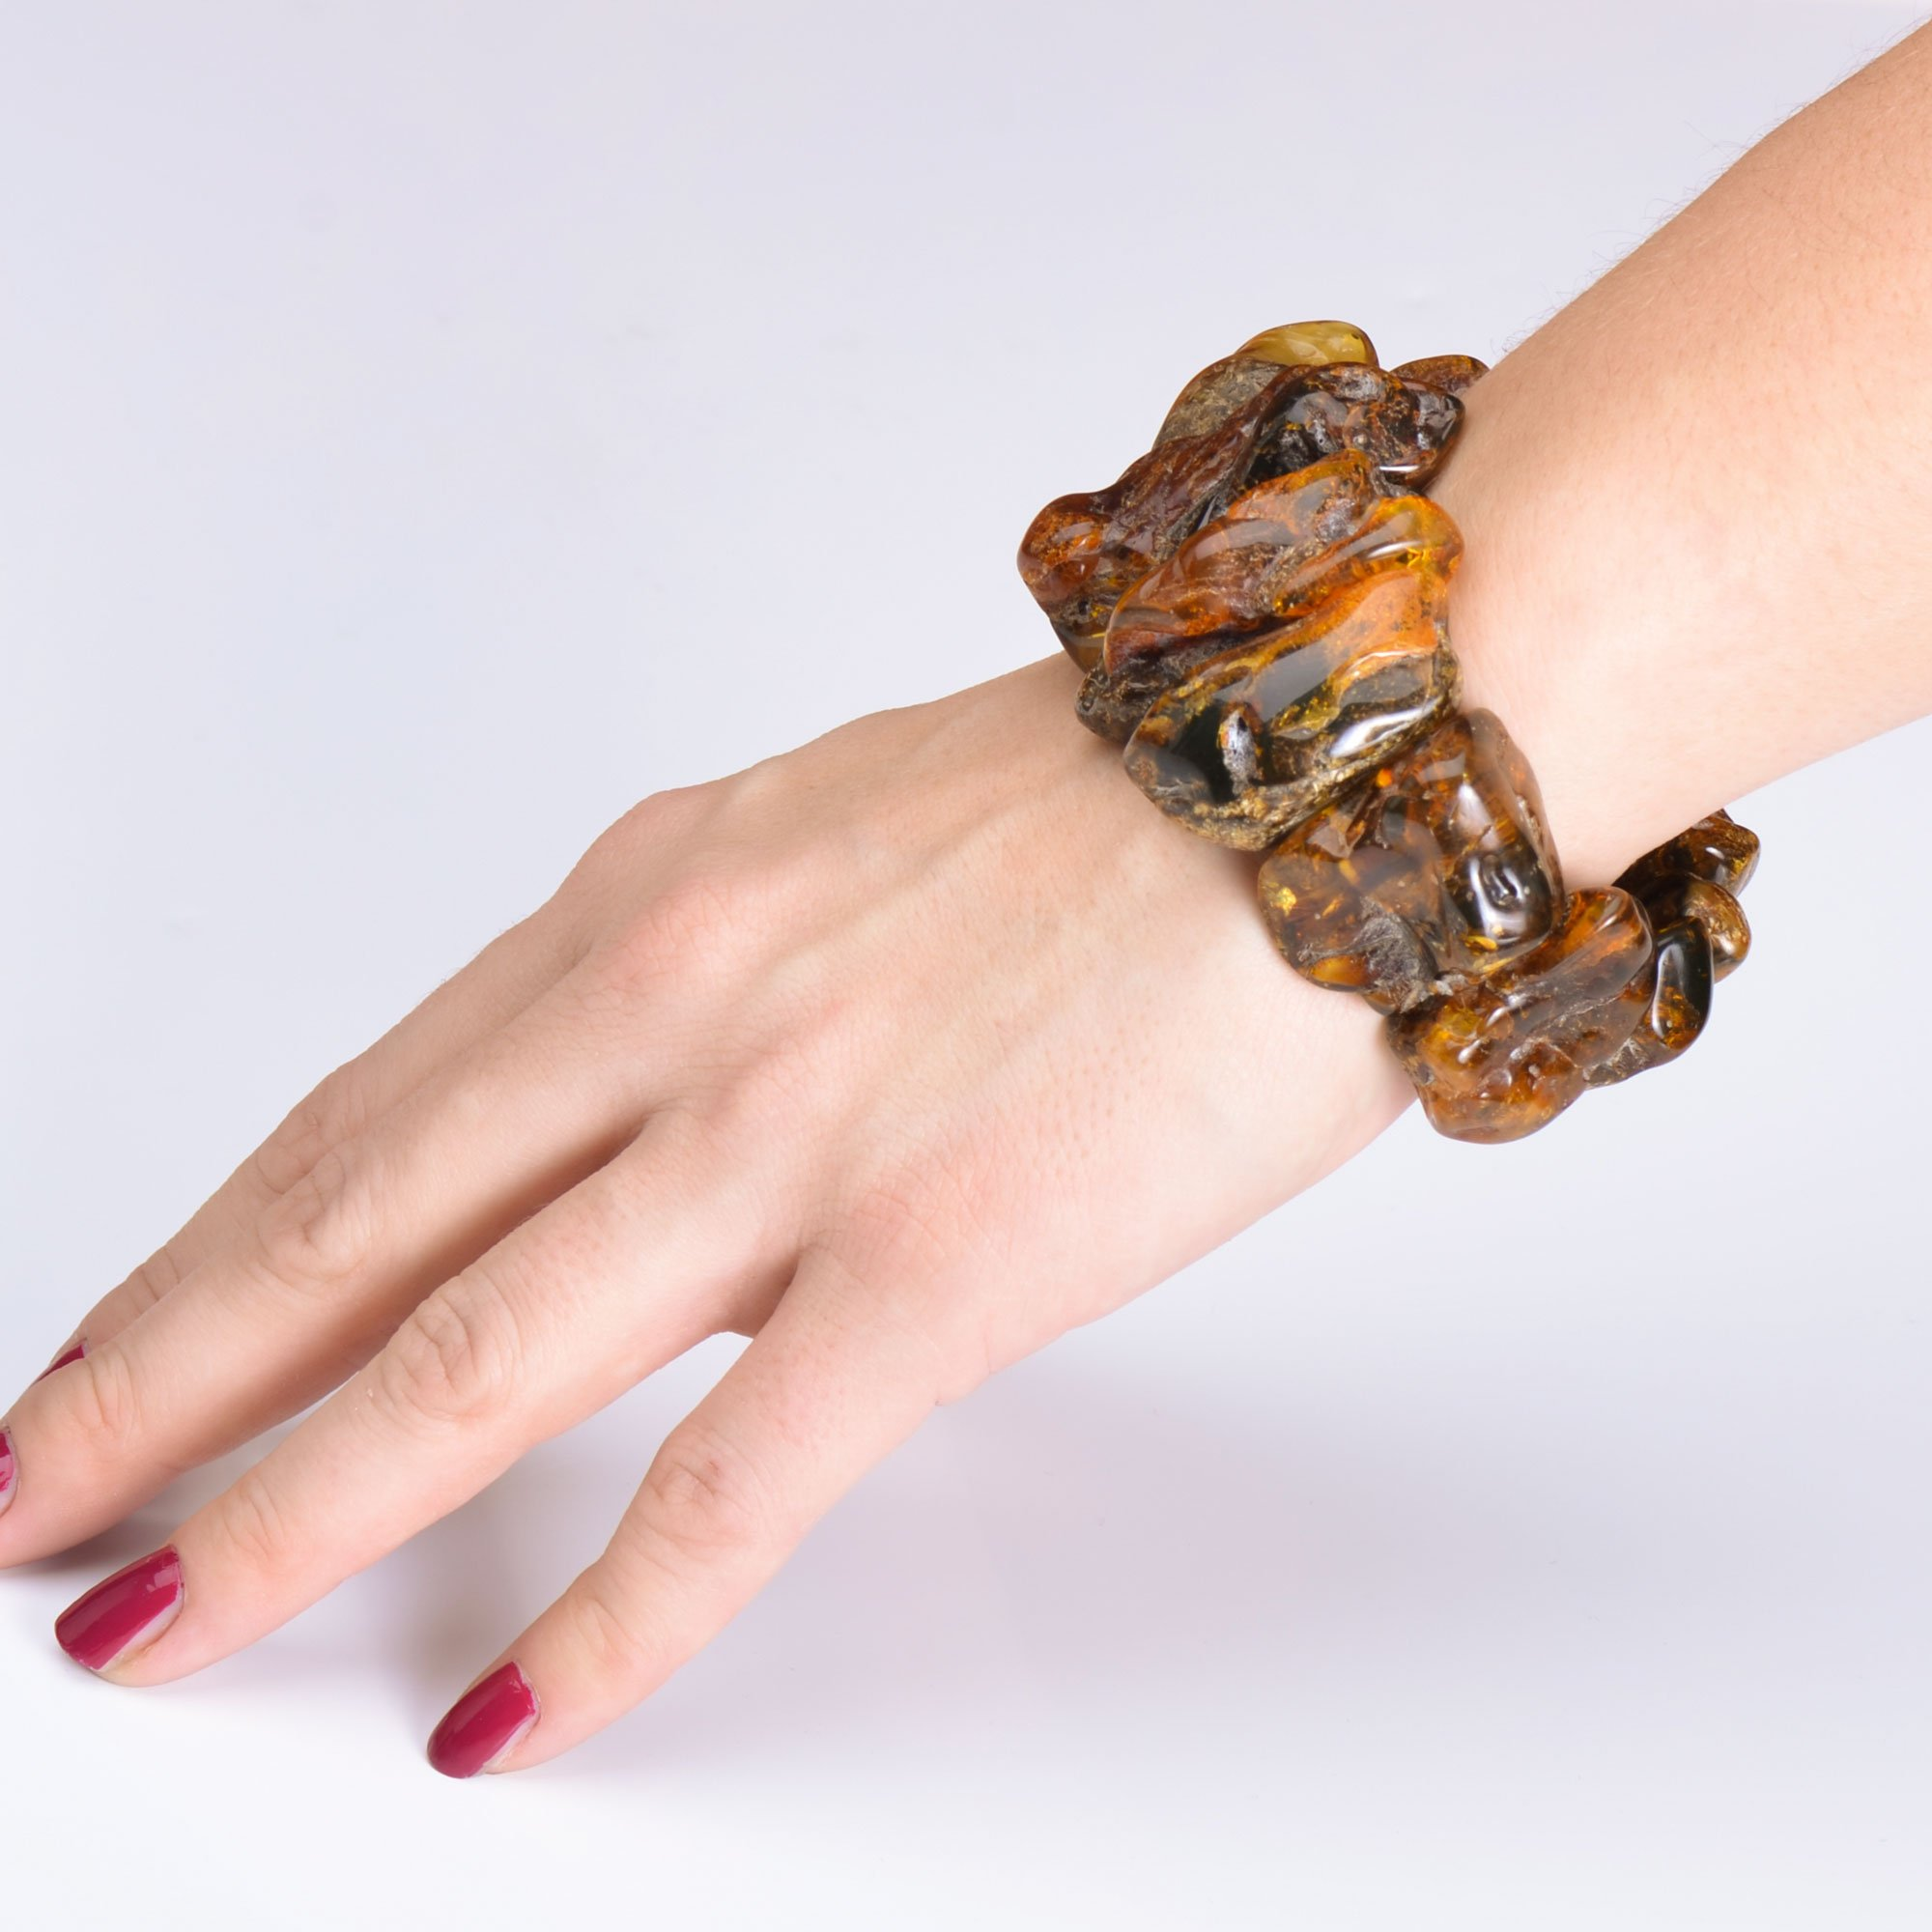 Massive and Exclusive Amber Bracelet - Certified Vintage Amber Bracelet - Unique Amber Pieces - One Item Only by Genuine Amber (Image #5)